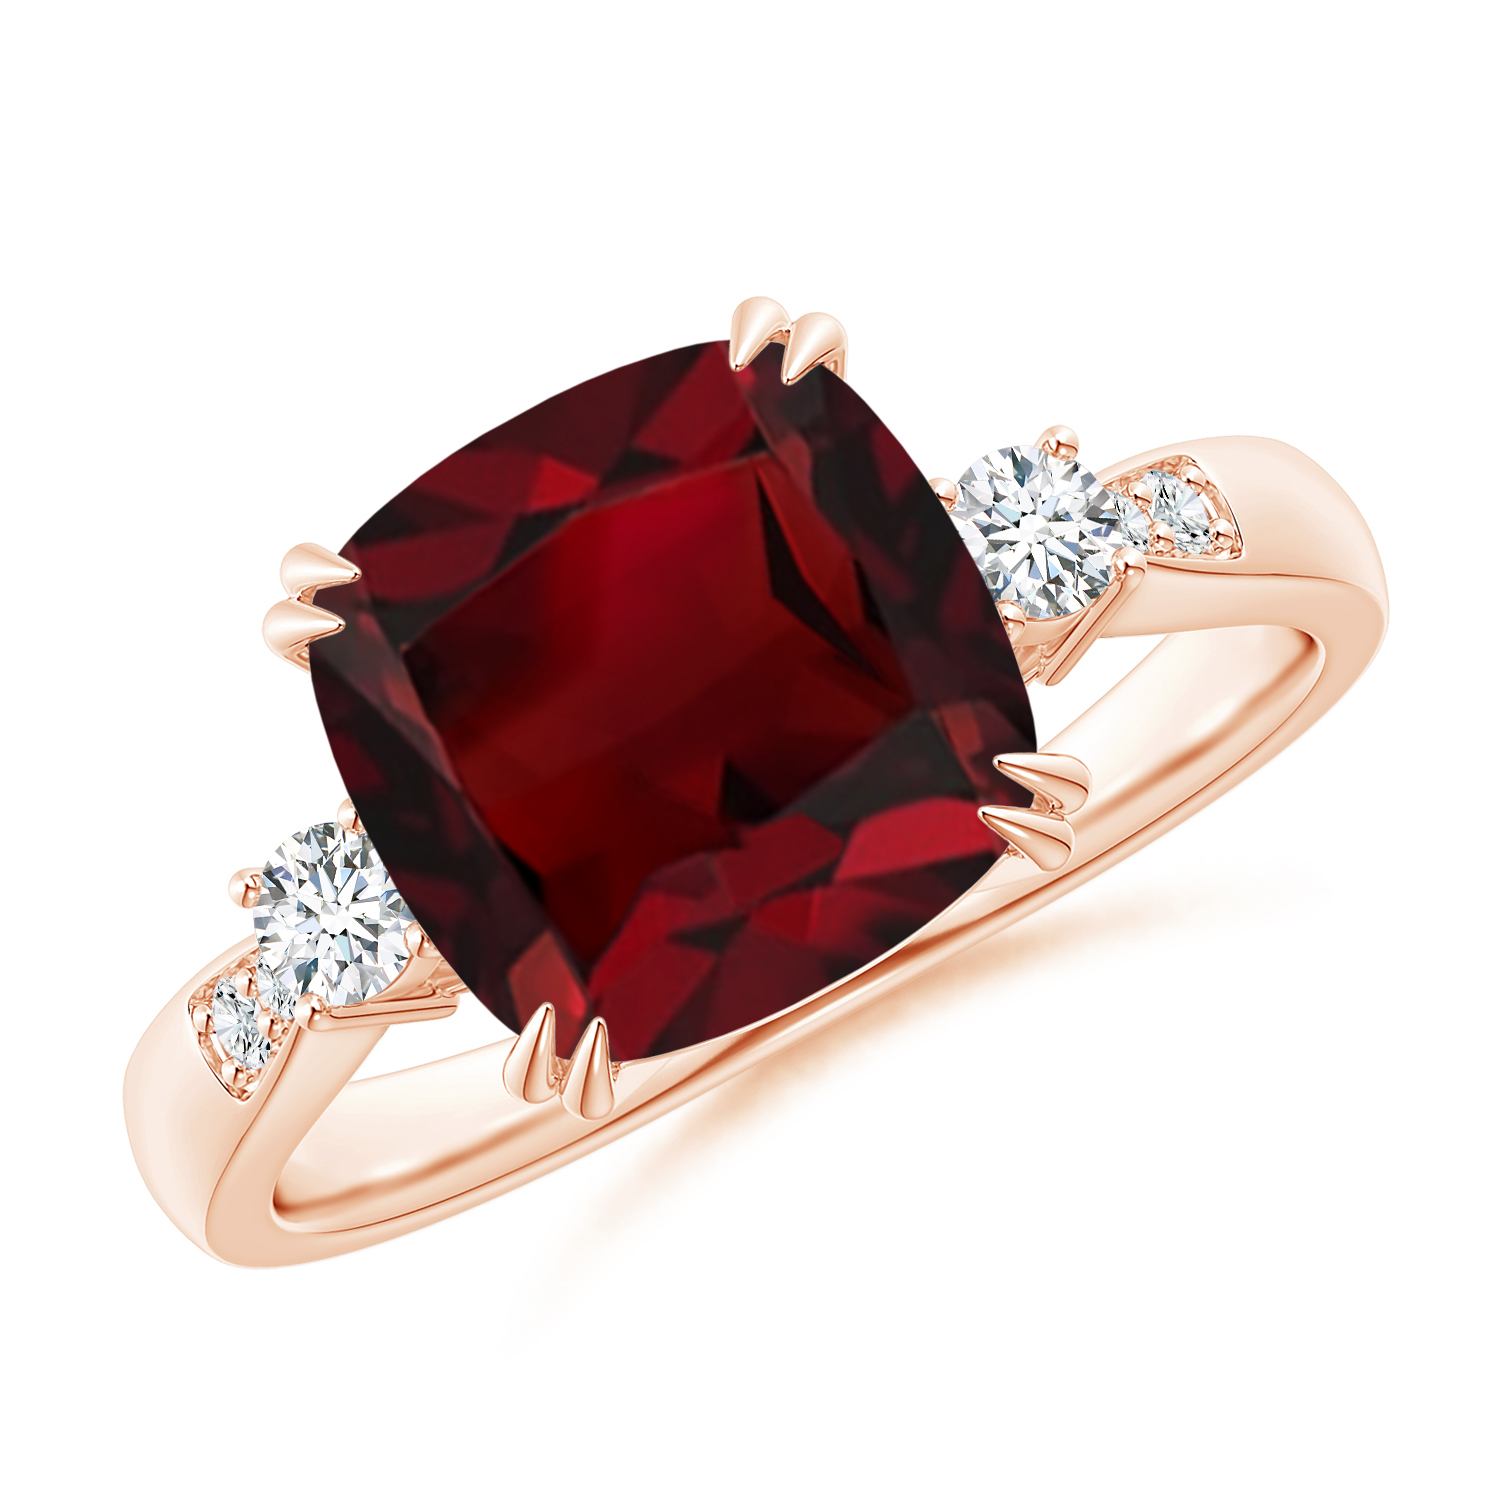 Cushion Garnet Solitaire Ring with Diamond Accents - Angara.com